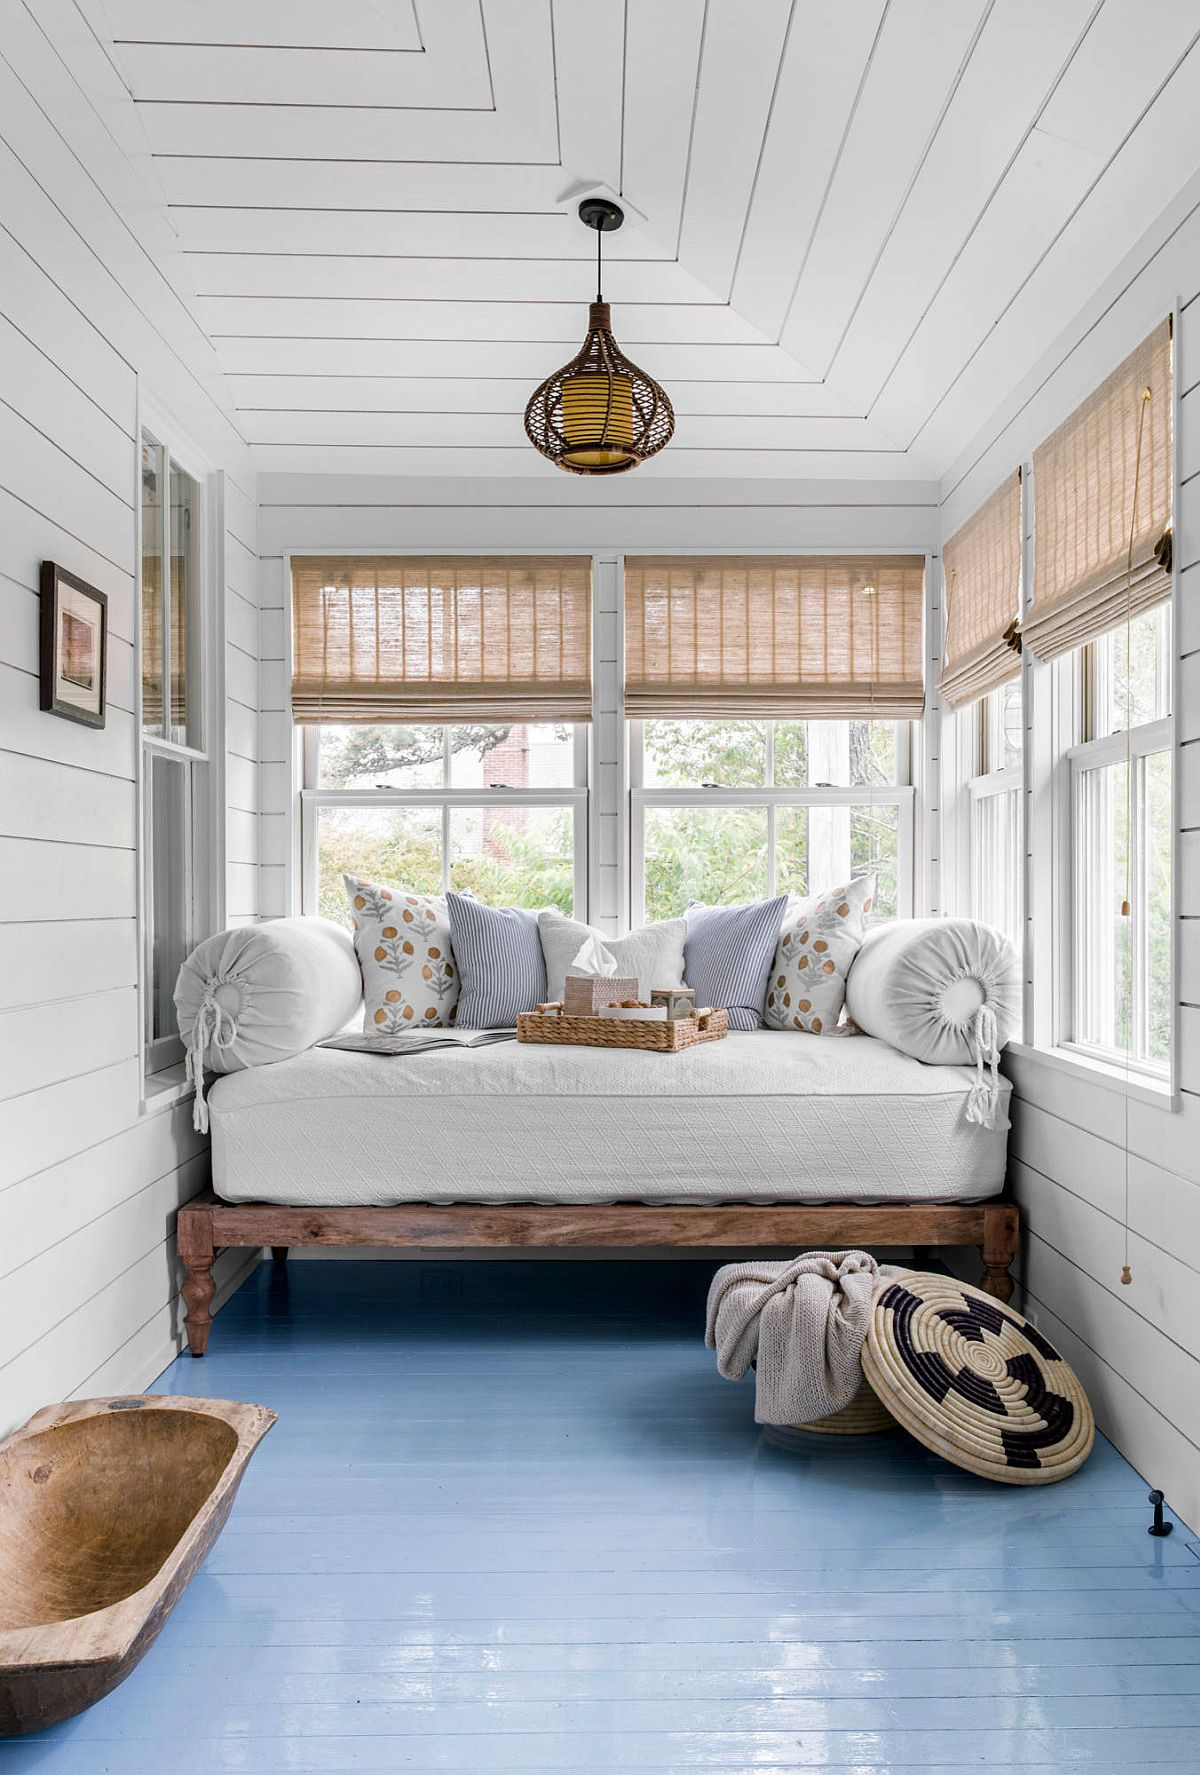 Best Bedrooms with Painted Floors: Seasonal Trend with a Difference